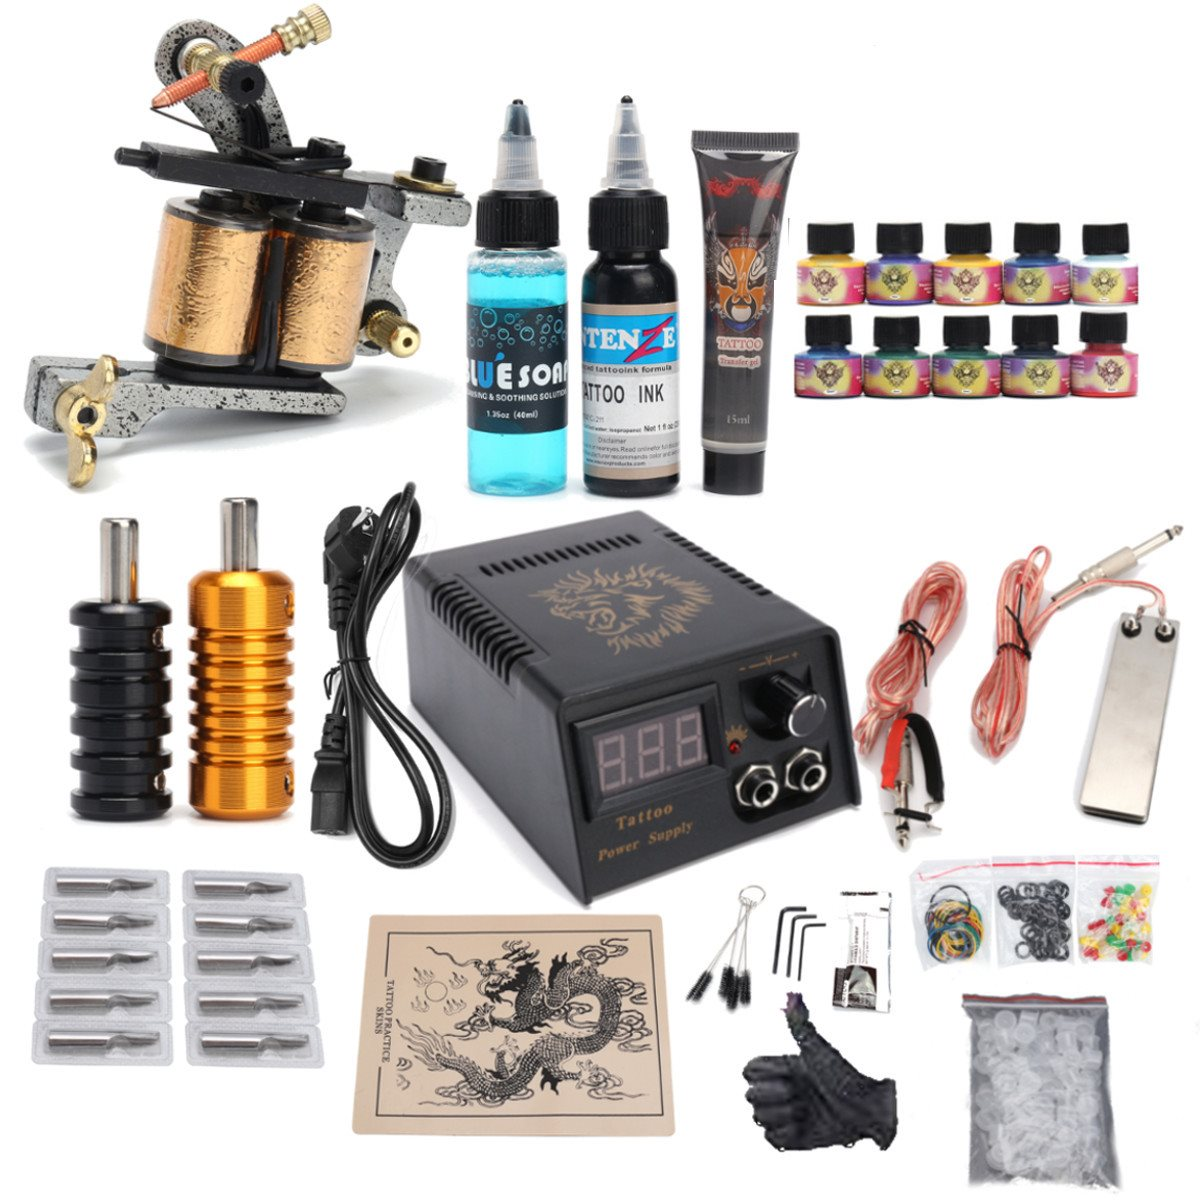 Complete Tattoo Kit Set Tattoo Machine Gun Power Needles With 10Colors Ink Permanent Make Up Body Tattooing Art Supply 2017 p80 panasonic super high cost complete air cutter torches torch head body straigh machine arc starting 12foot